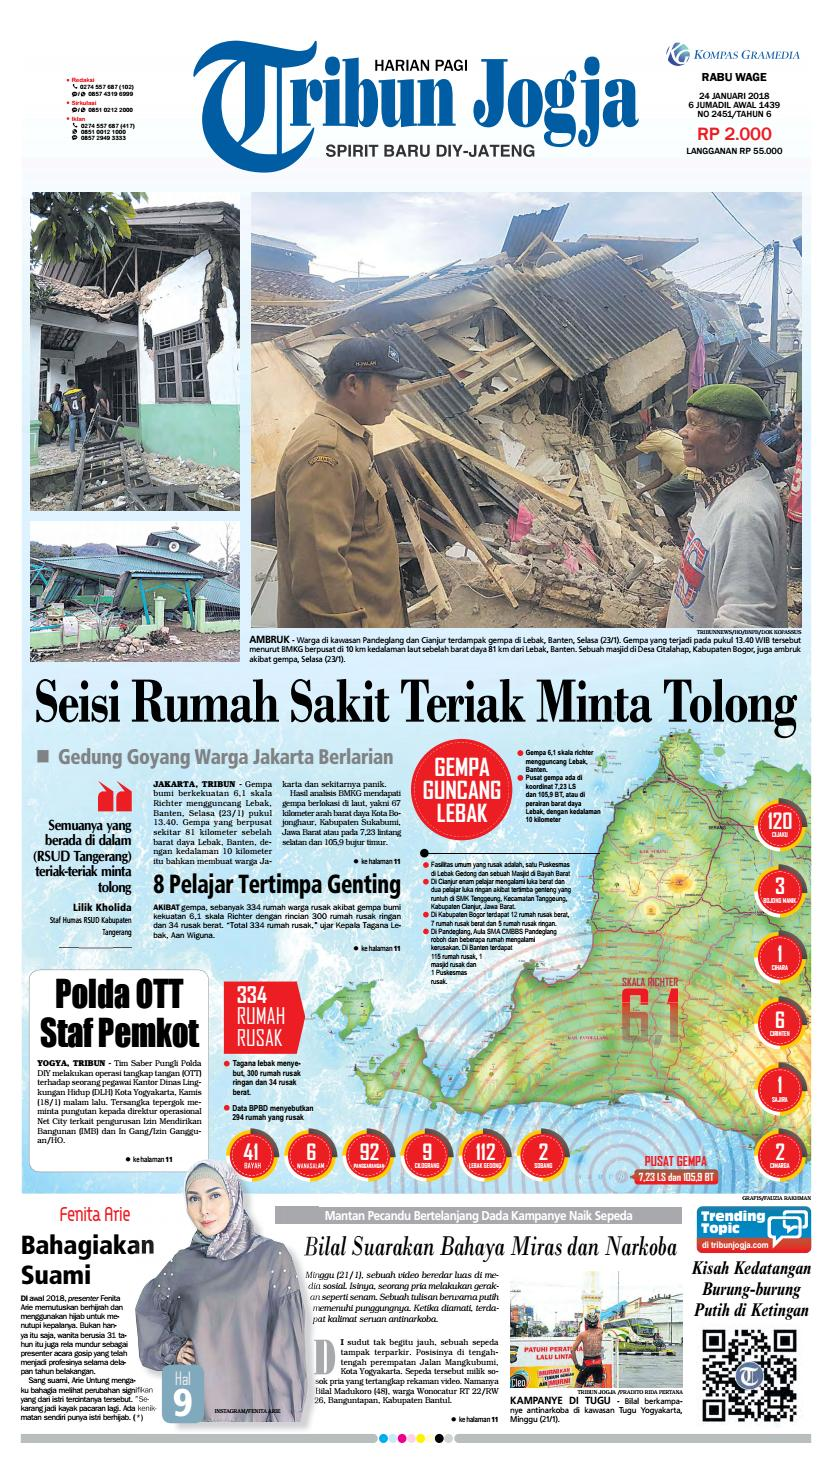 Tribunjogja 24 01 2018 By Tribun Jogja Issuu Produk Ukm Bumn Permen Tape Ladida